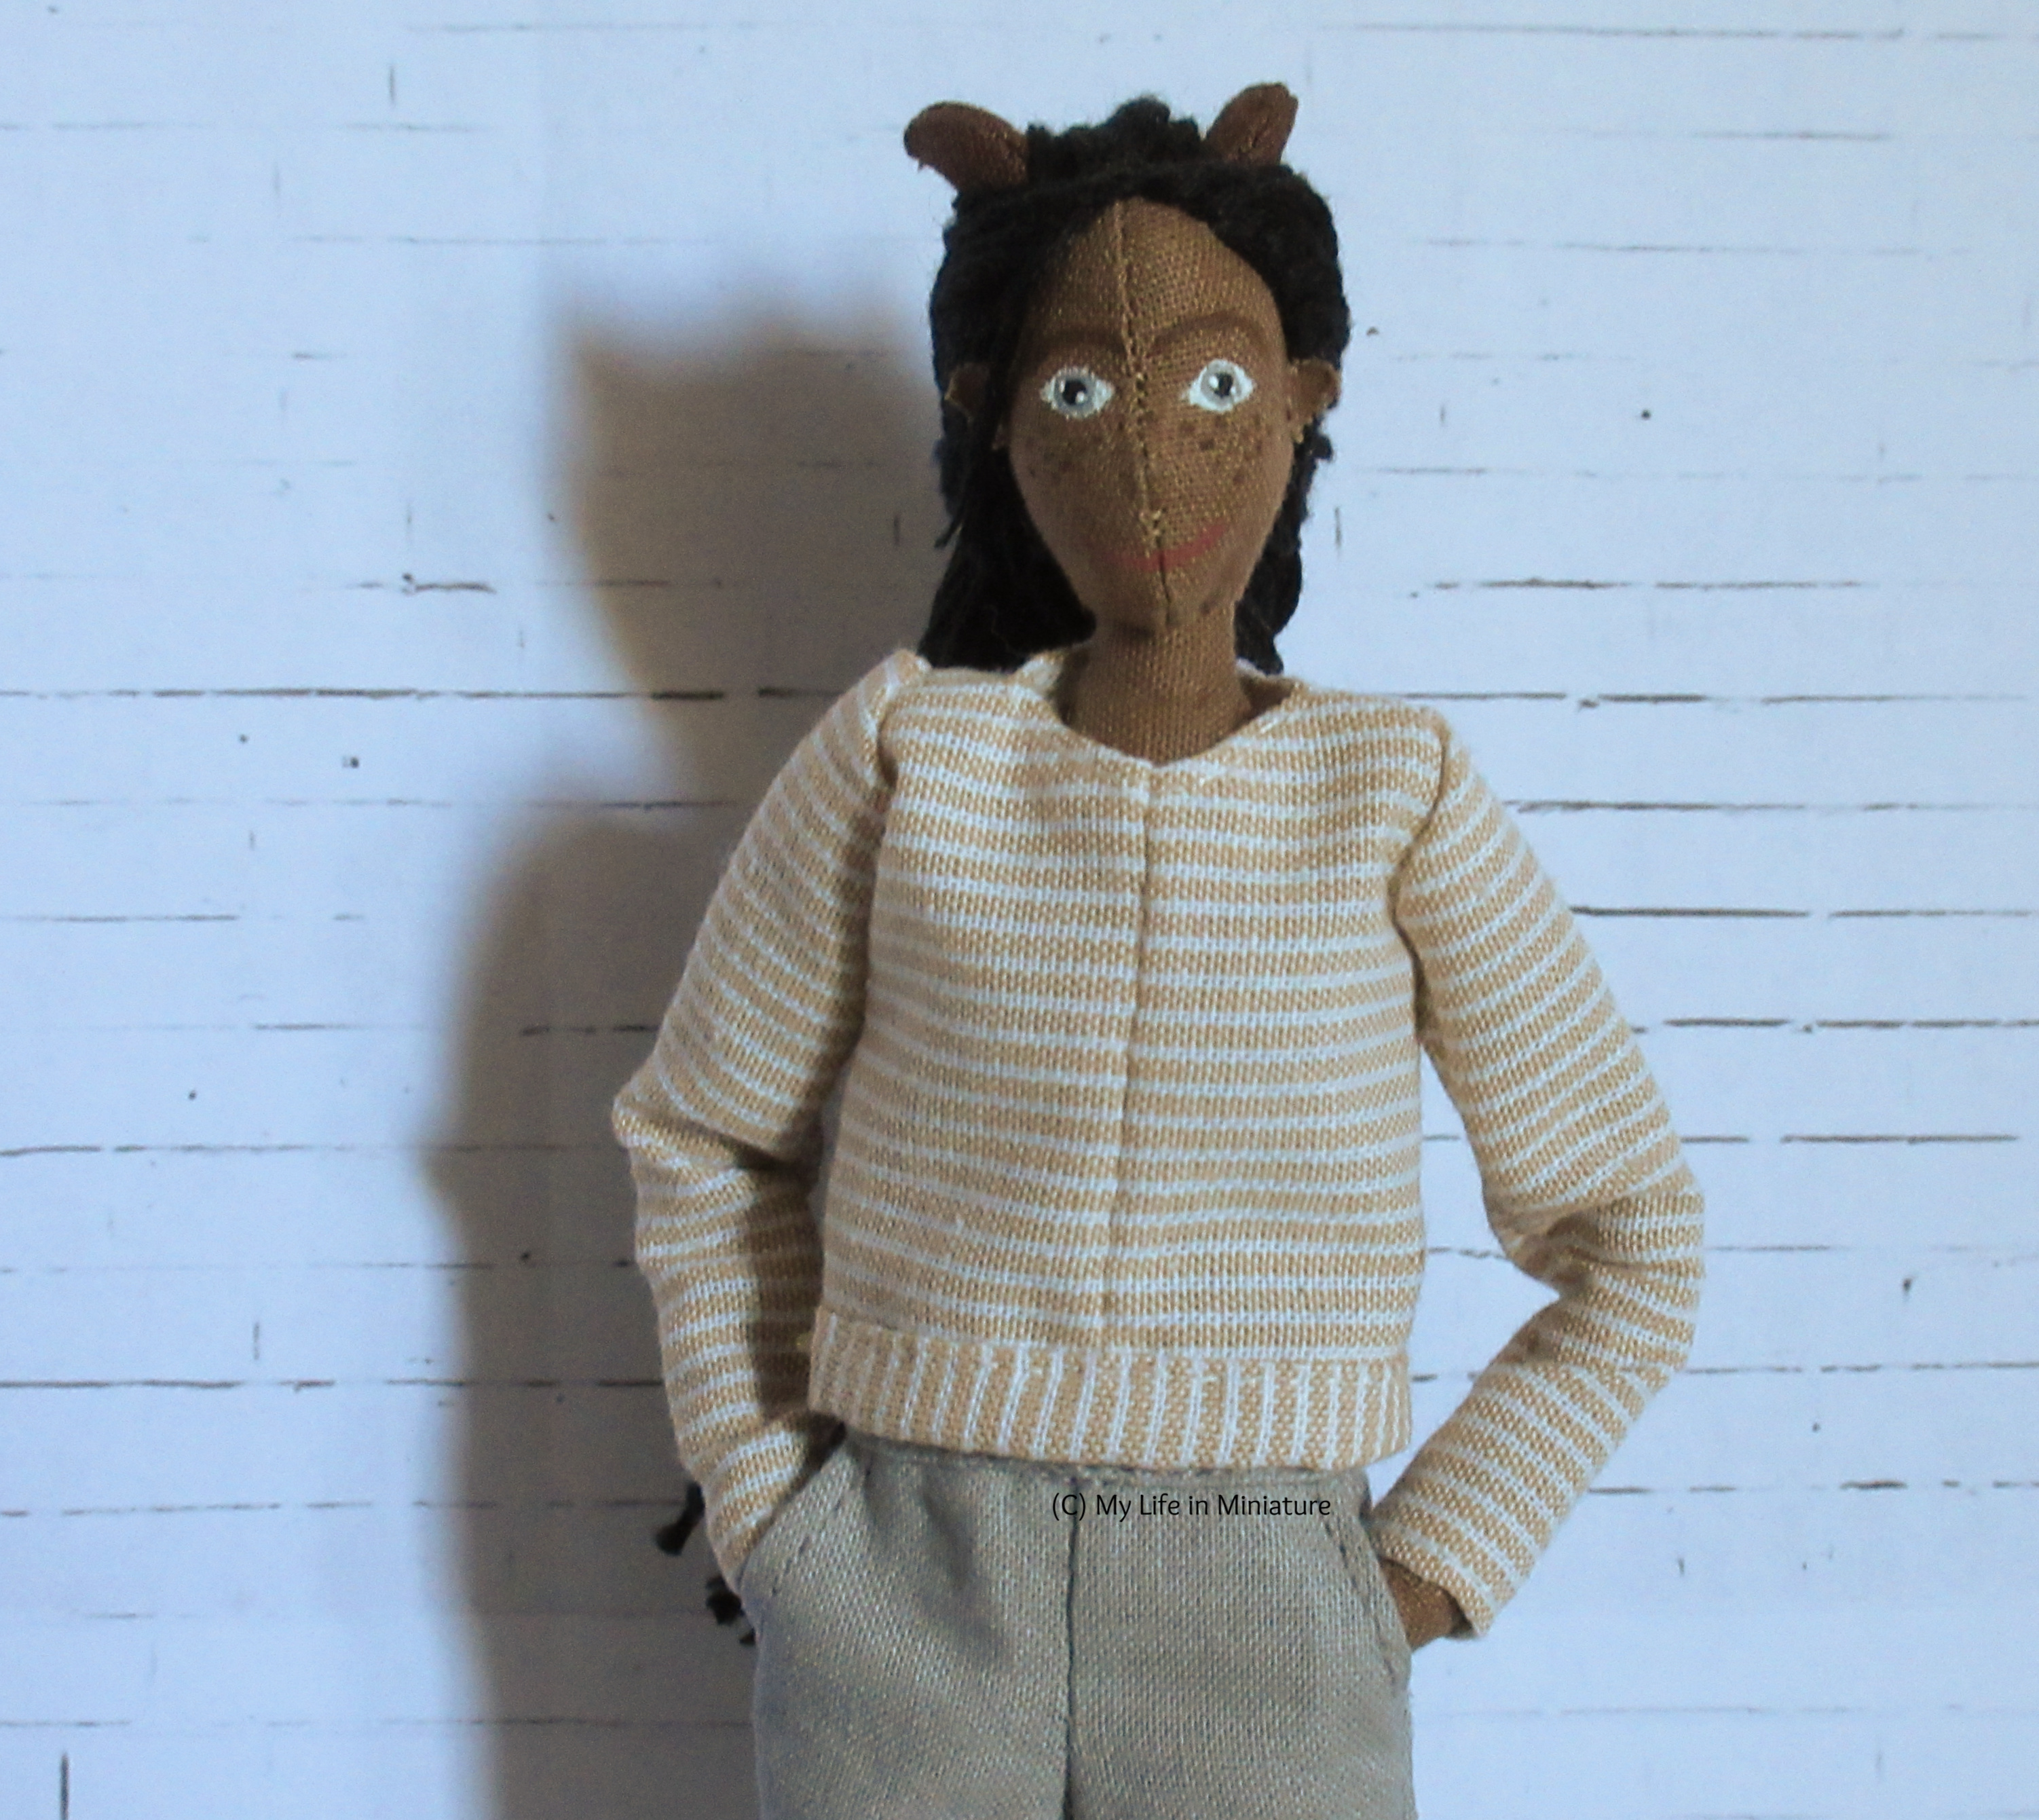 Petra wears a long-sleeved top with her grey pants, hands in pockets. The top is cream-and-white striped, and has a circular neck.